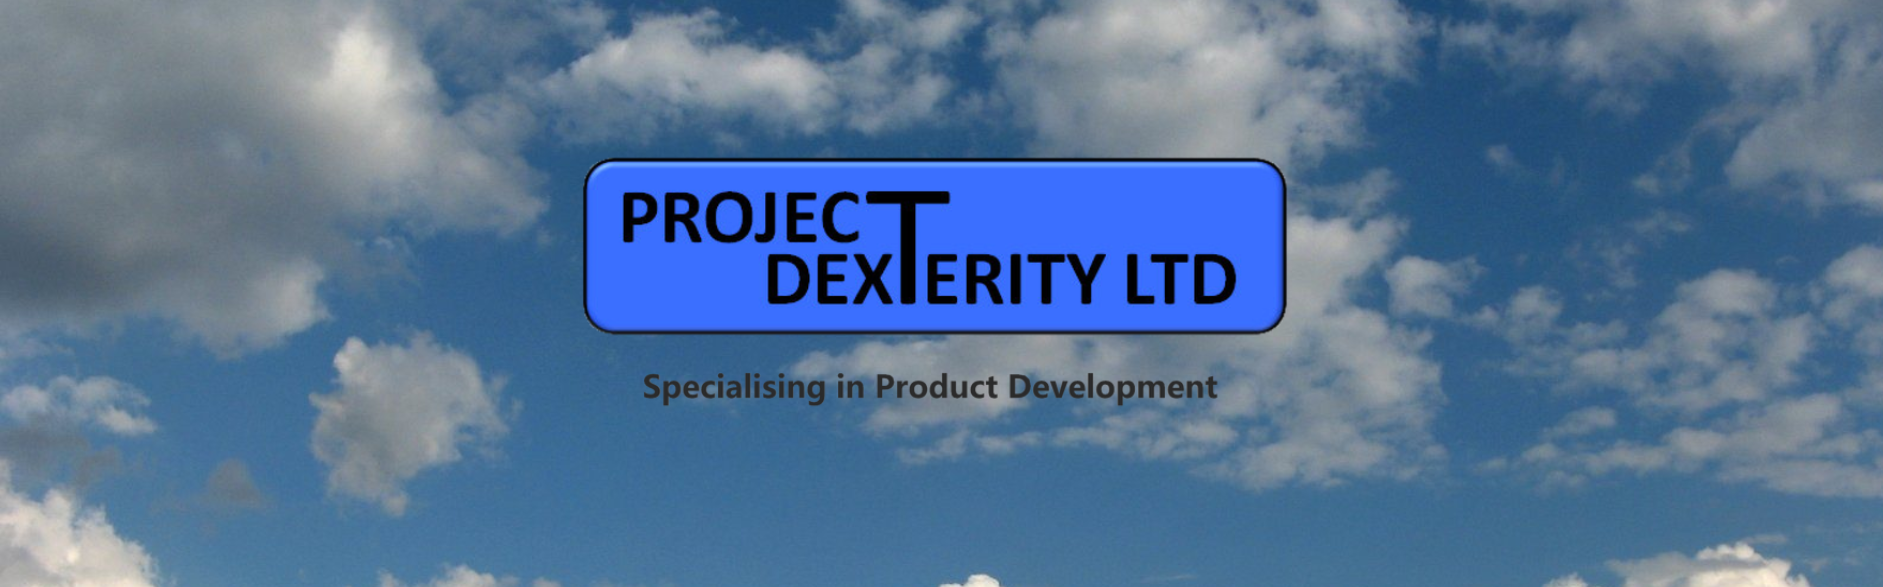 Project Dexterity